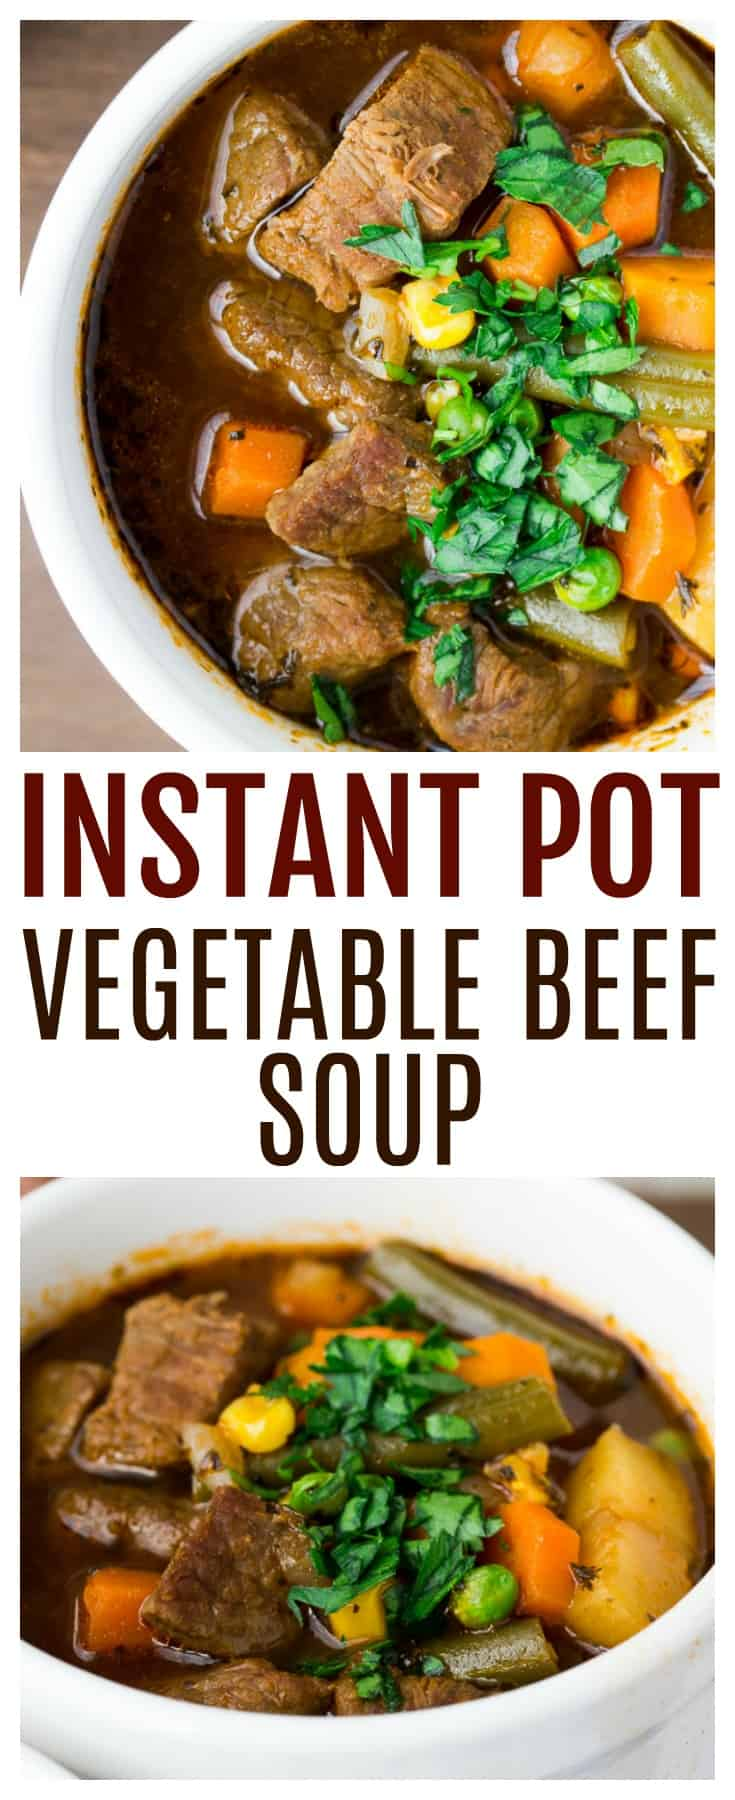 Instant Pot Vegetable Beef Soup tastes just as delicious as any other homemade vegetable beef soup recipe, but takes less time! The flavor is the delicious and the beef is melt-in-your-mouth tender! | #dlbrecipes #instantpot #instantpotsoup #souprecipe #vegetablesoup #vegetablebeefsoup